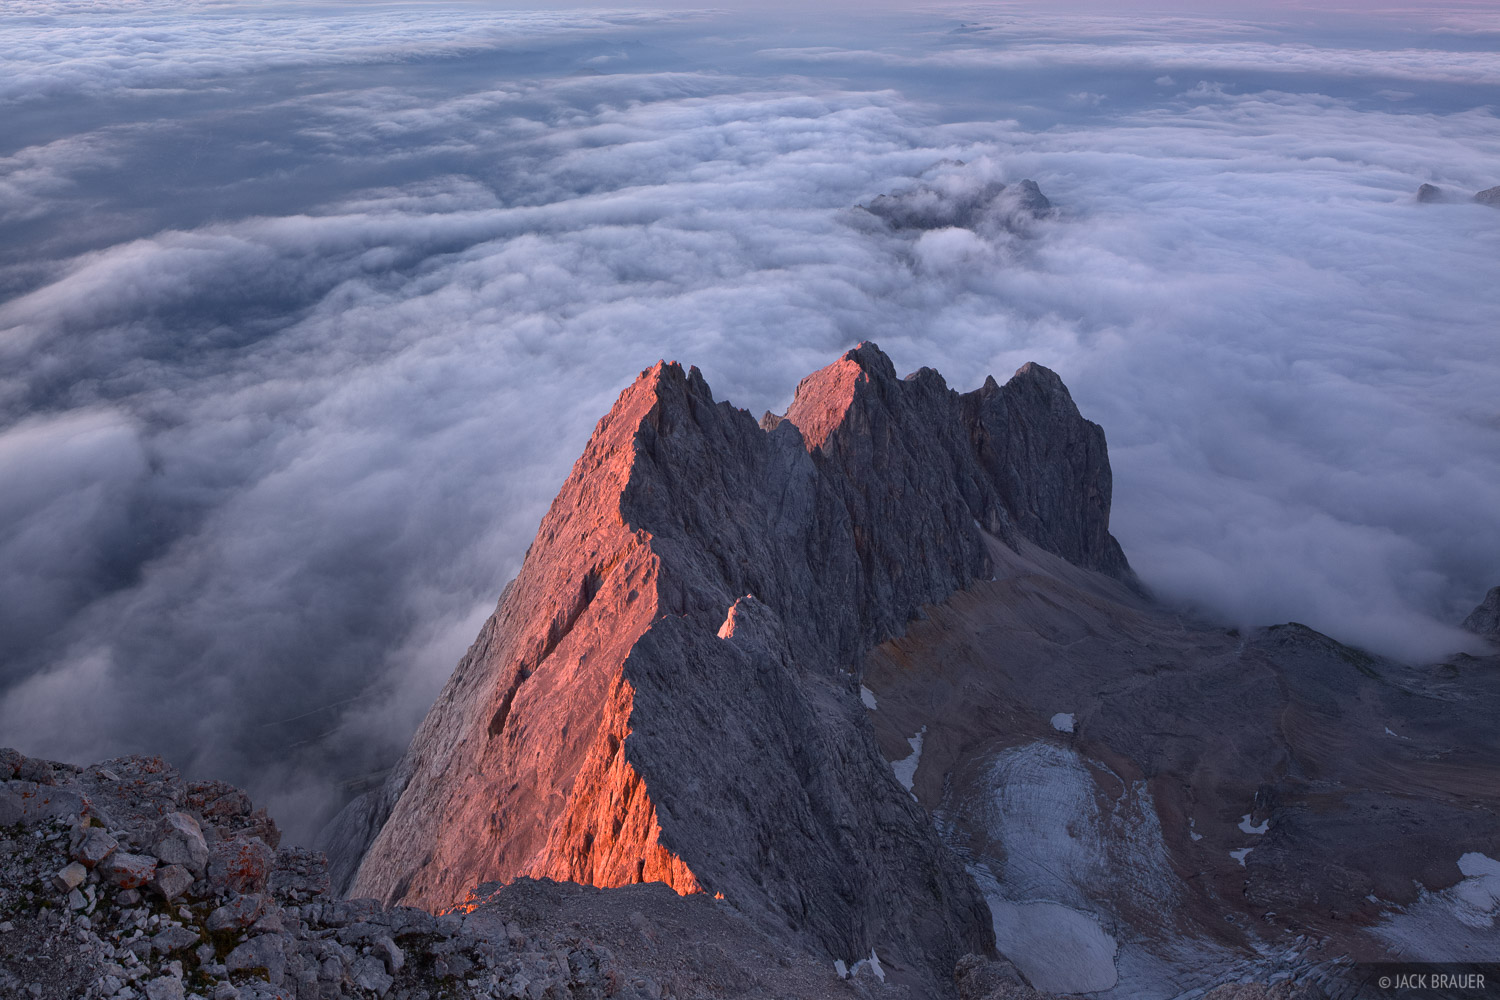 Zugspitze, Wettersteingebirge, Germany, sunset, clouds, photo